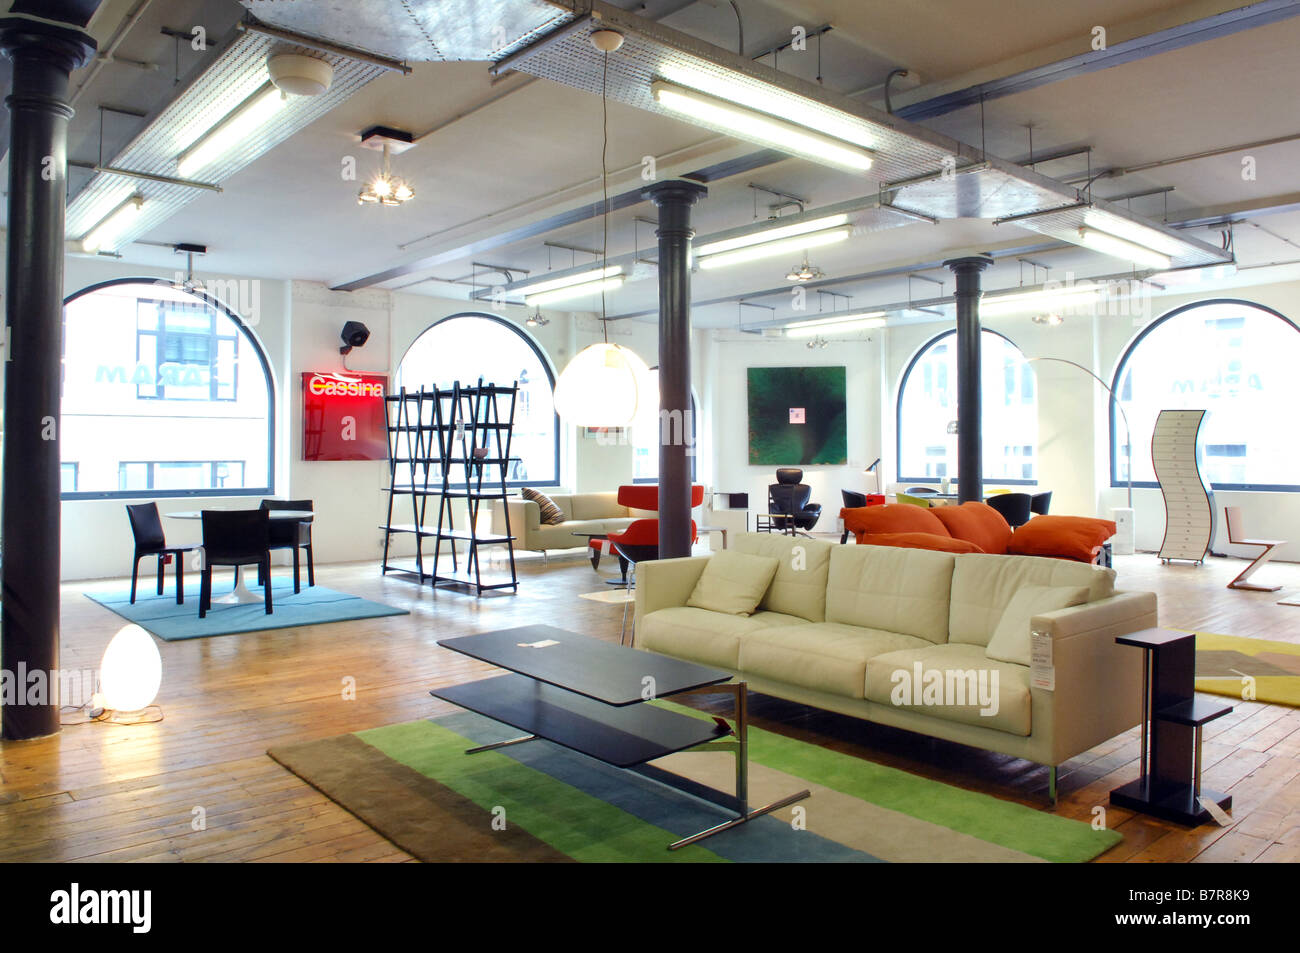 Furniture For Sale In A Designer Furniture Store.   Stock Image